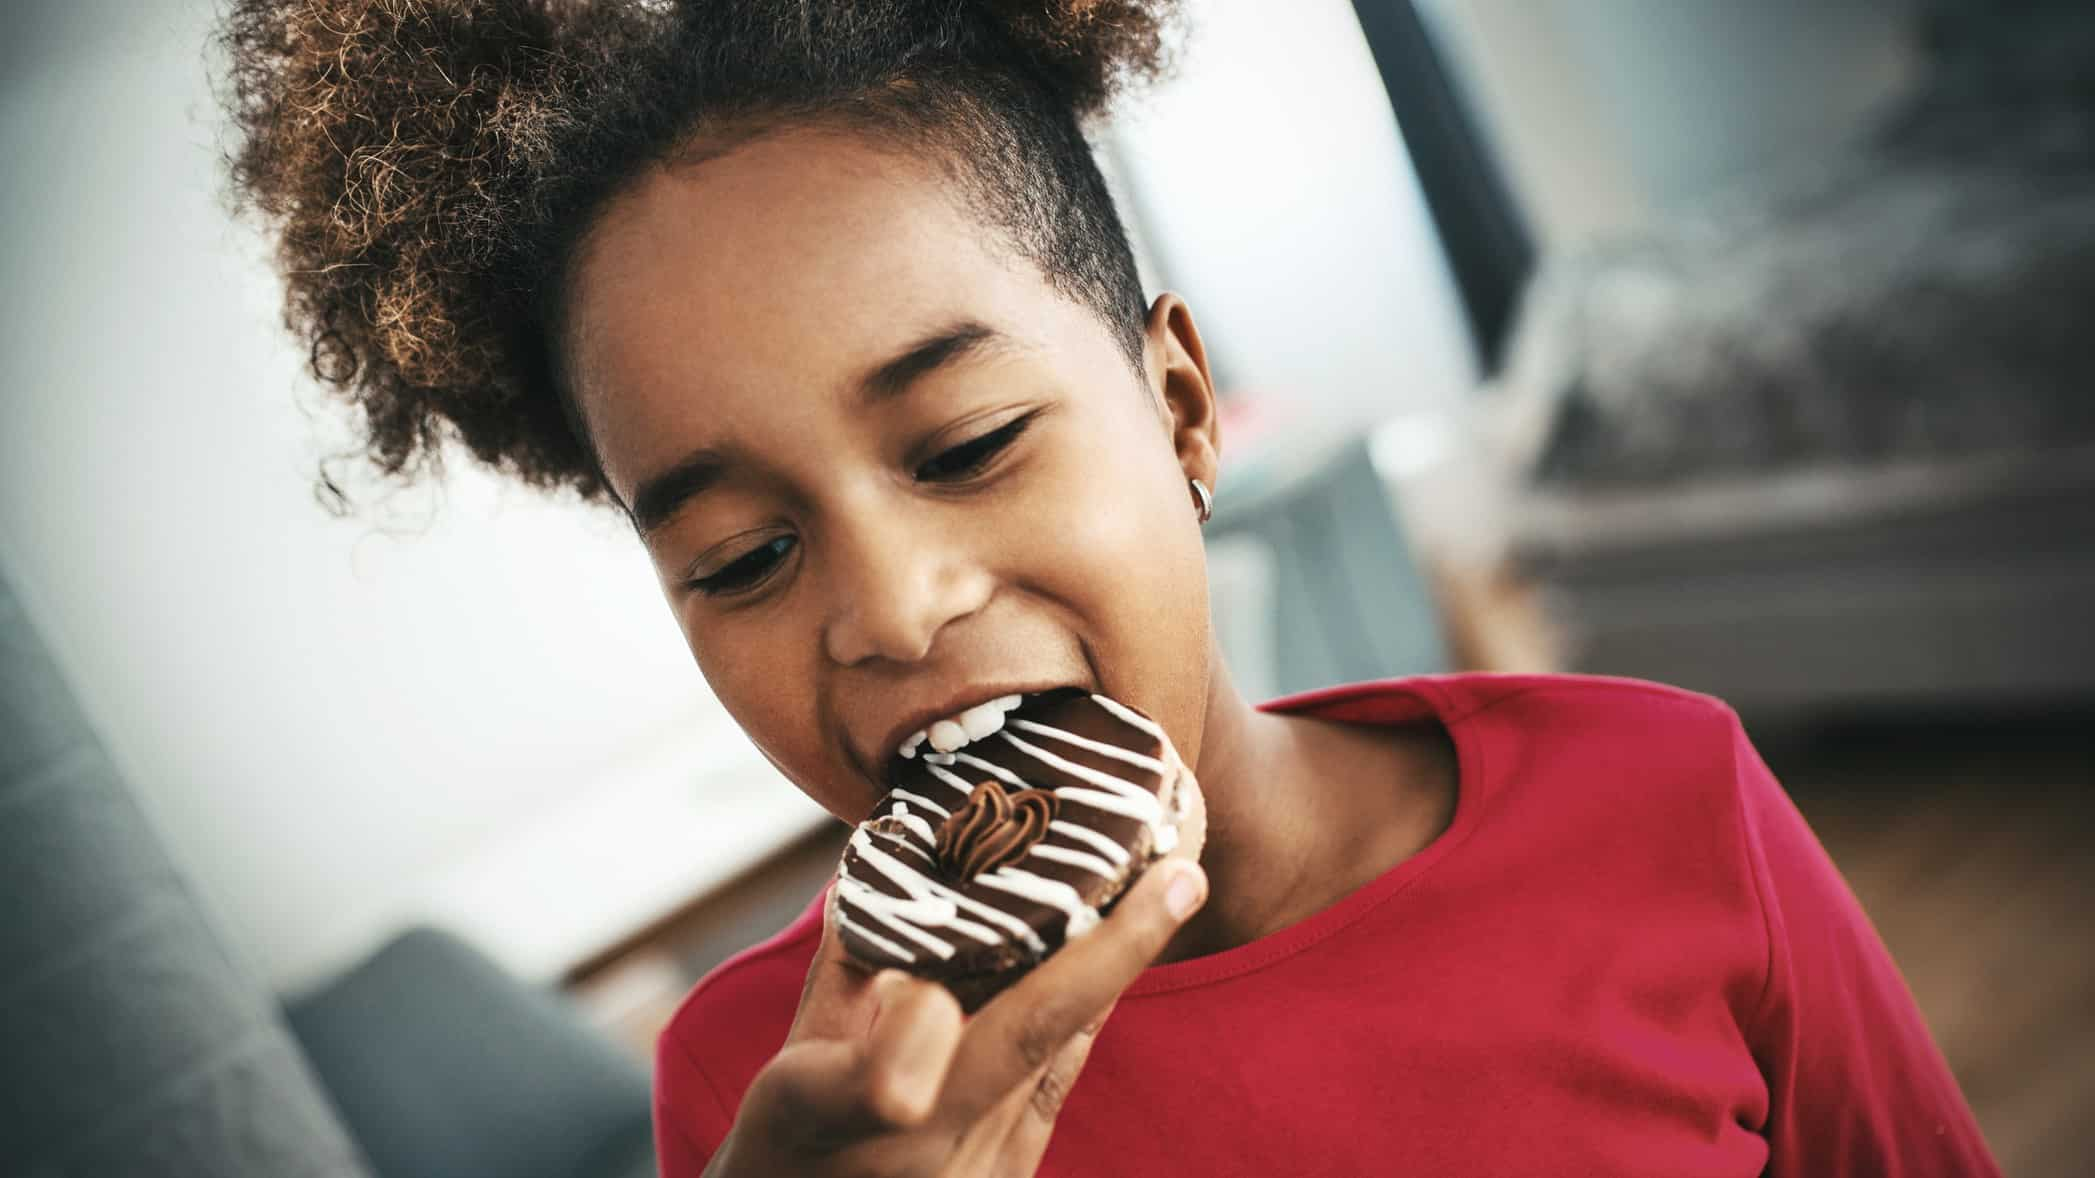 Young black girl taking a big bite out of a chocolate doughnut and she's happy about it